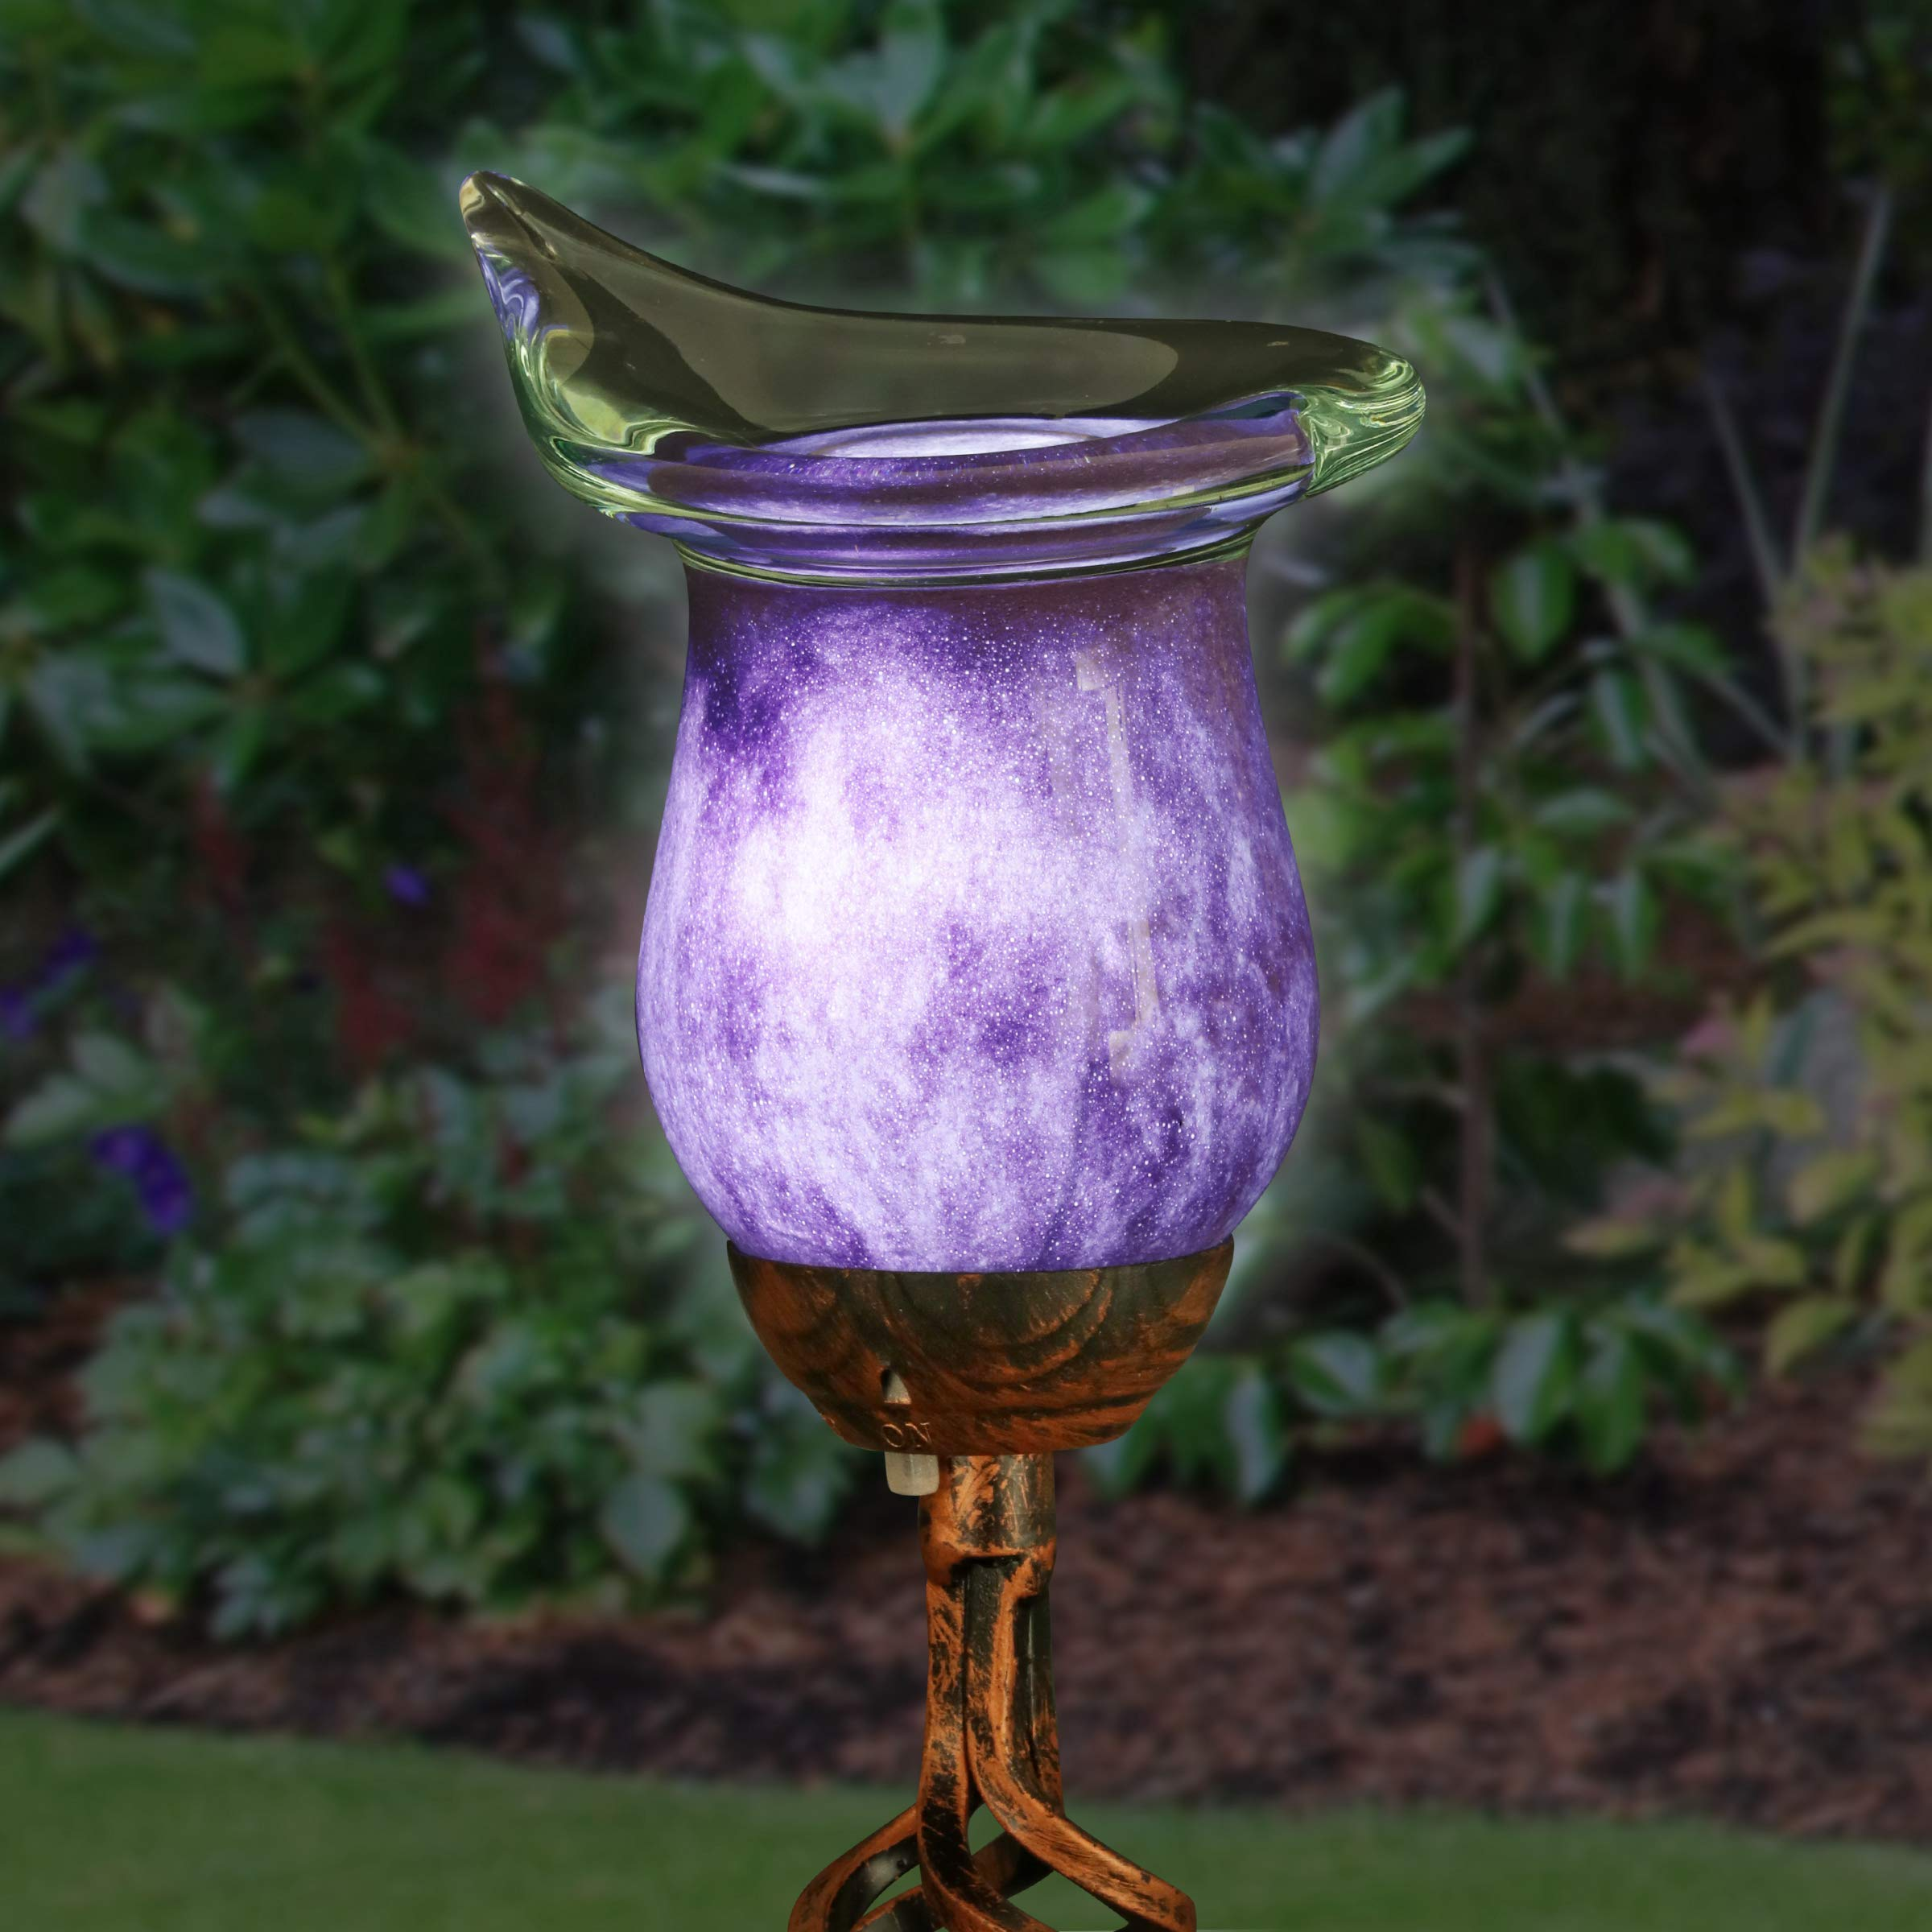 Exhart Purple Calla Lily Yard Stake w/Metal Finials - Solar Calla Lily w/LED Lights, Calla Lily Flower Outdoor Decor Lights, Elegamt Glass Flower Décor for Outdoors, 3'' L x 3.8'' W x 31'' H